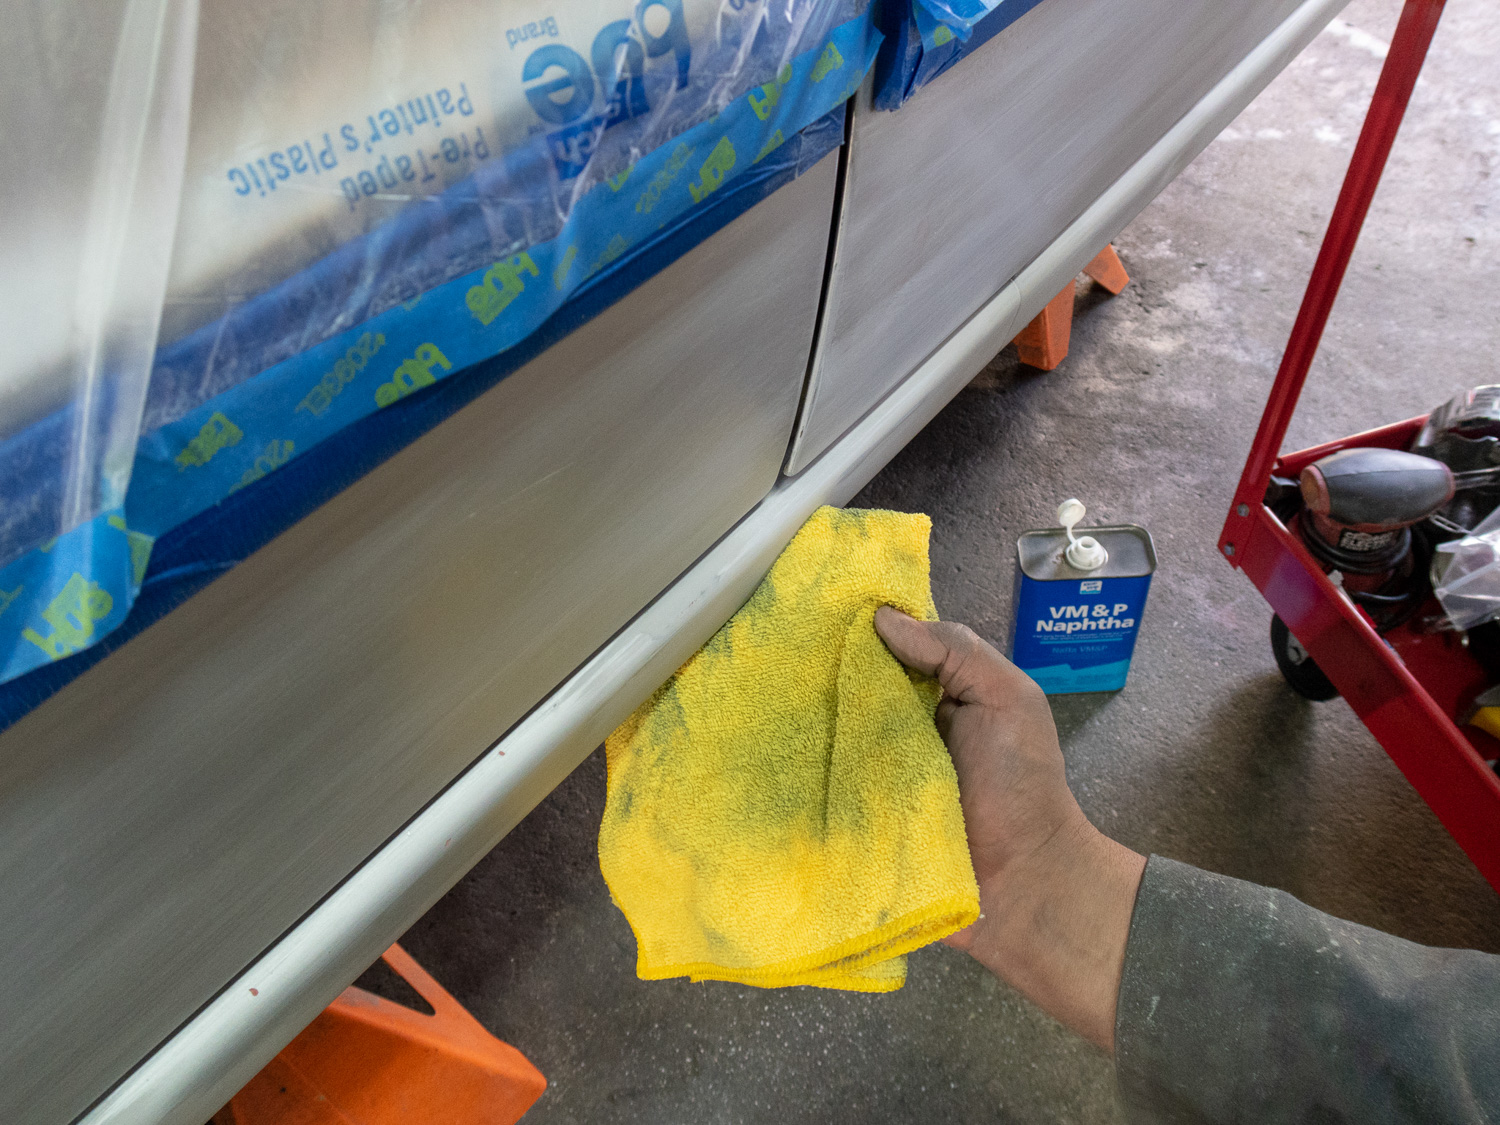 cleaning surface before paint